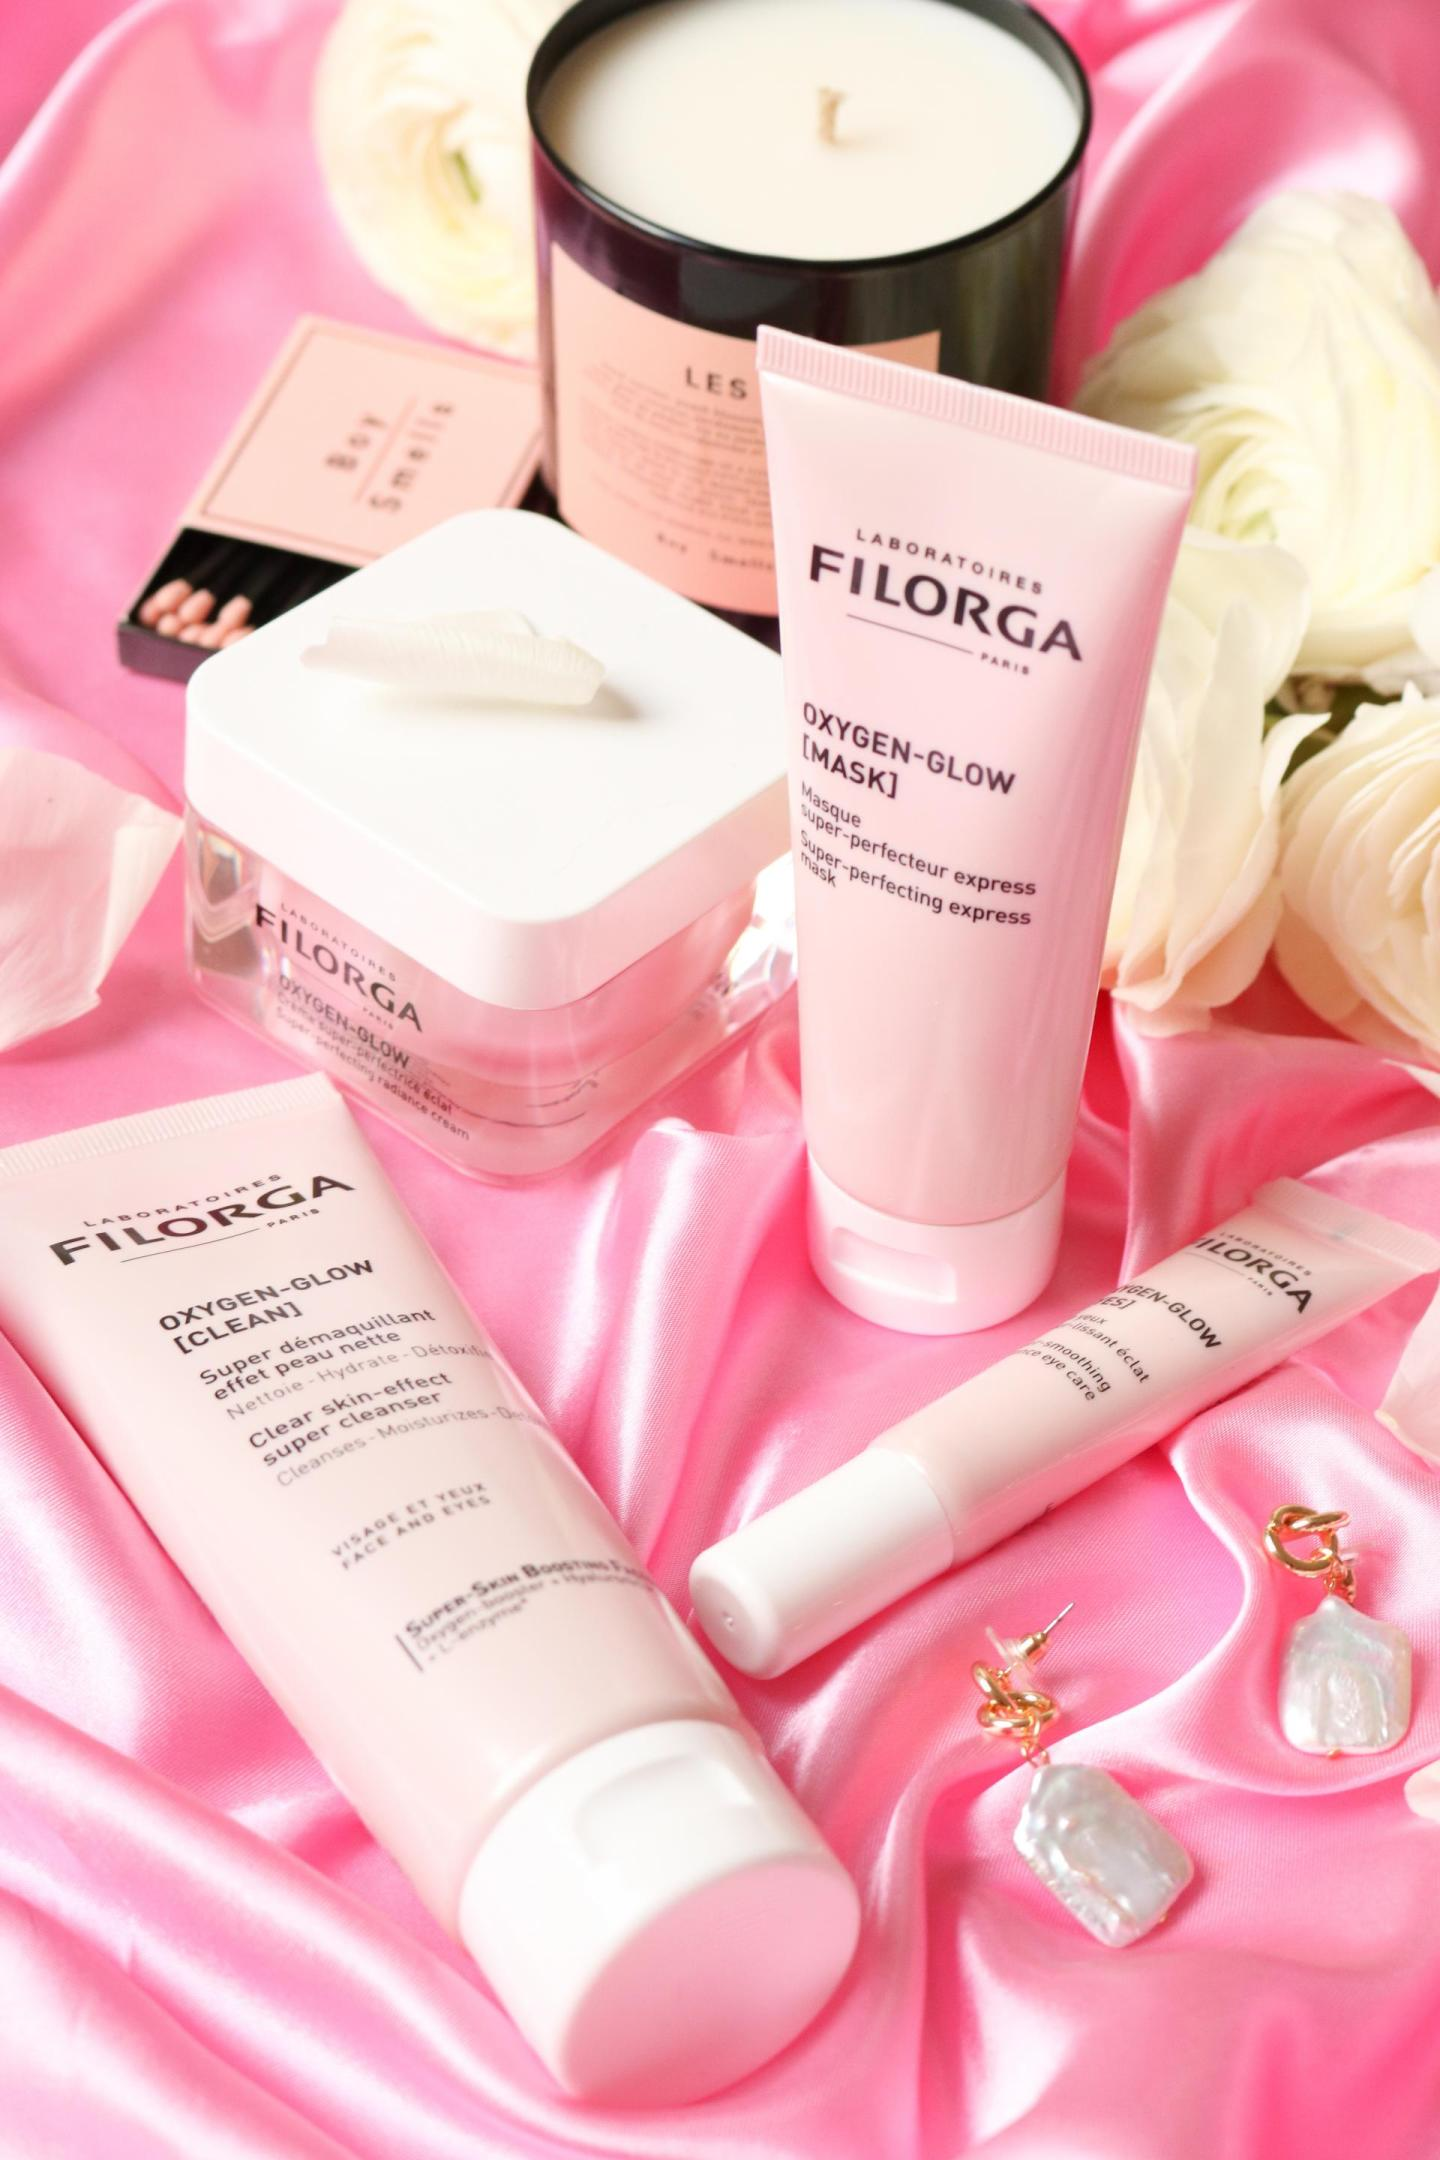 Filorga Oxygen-Glow Mask, Eye, Clean and Creme all together